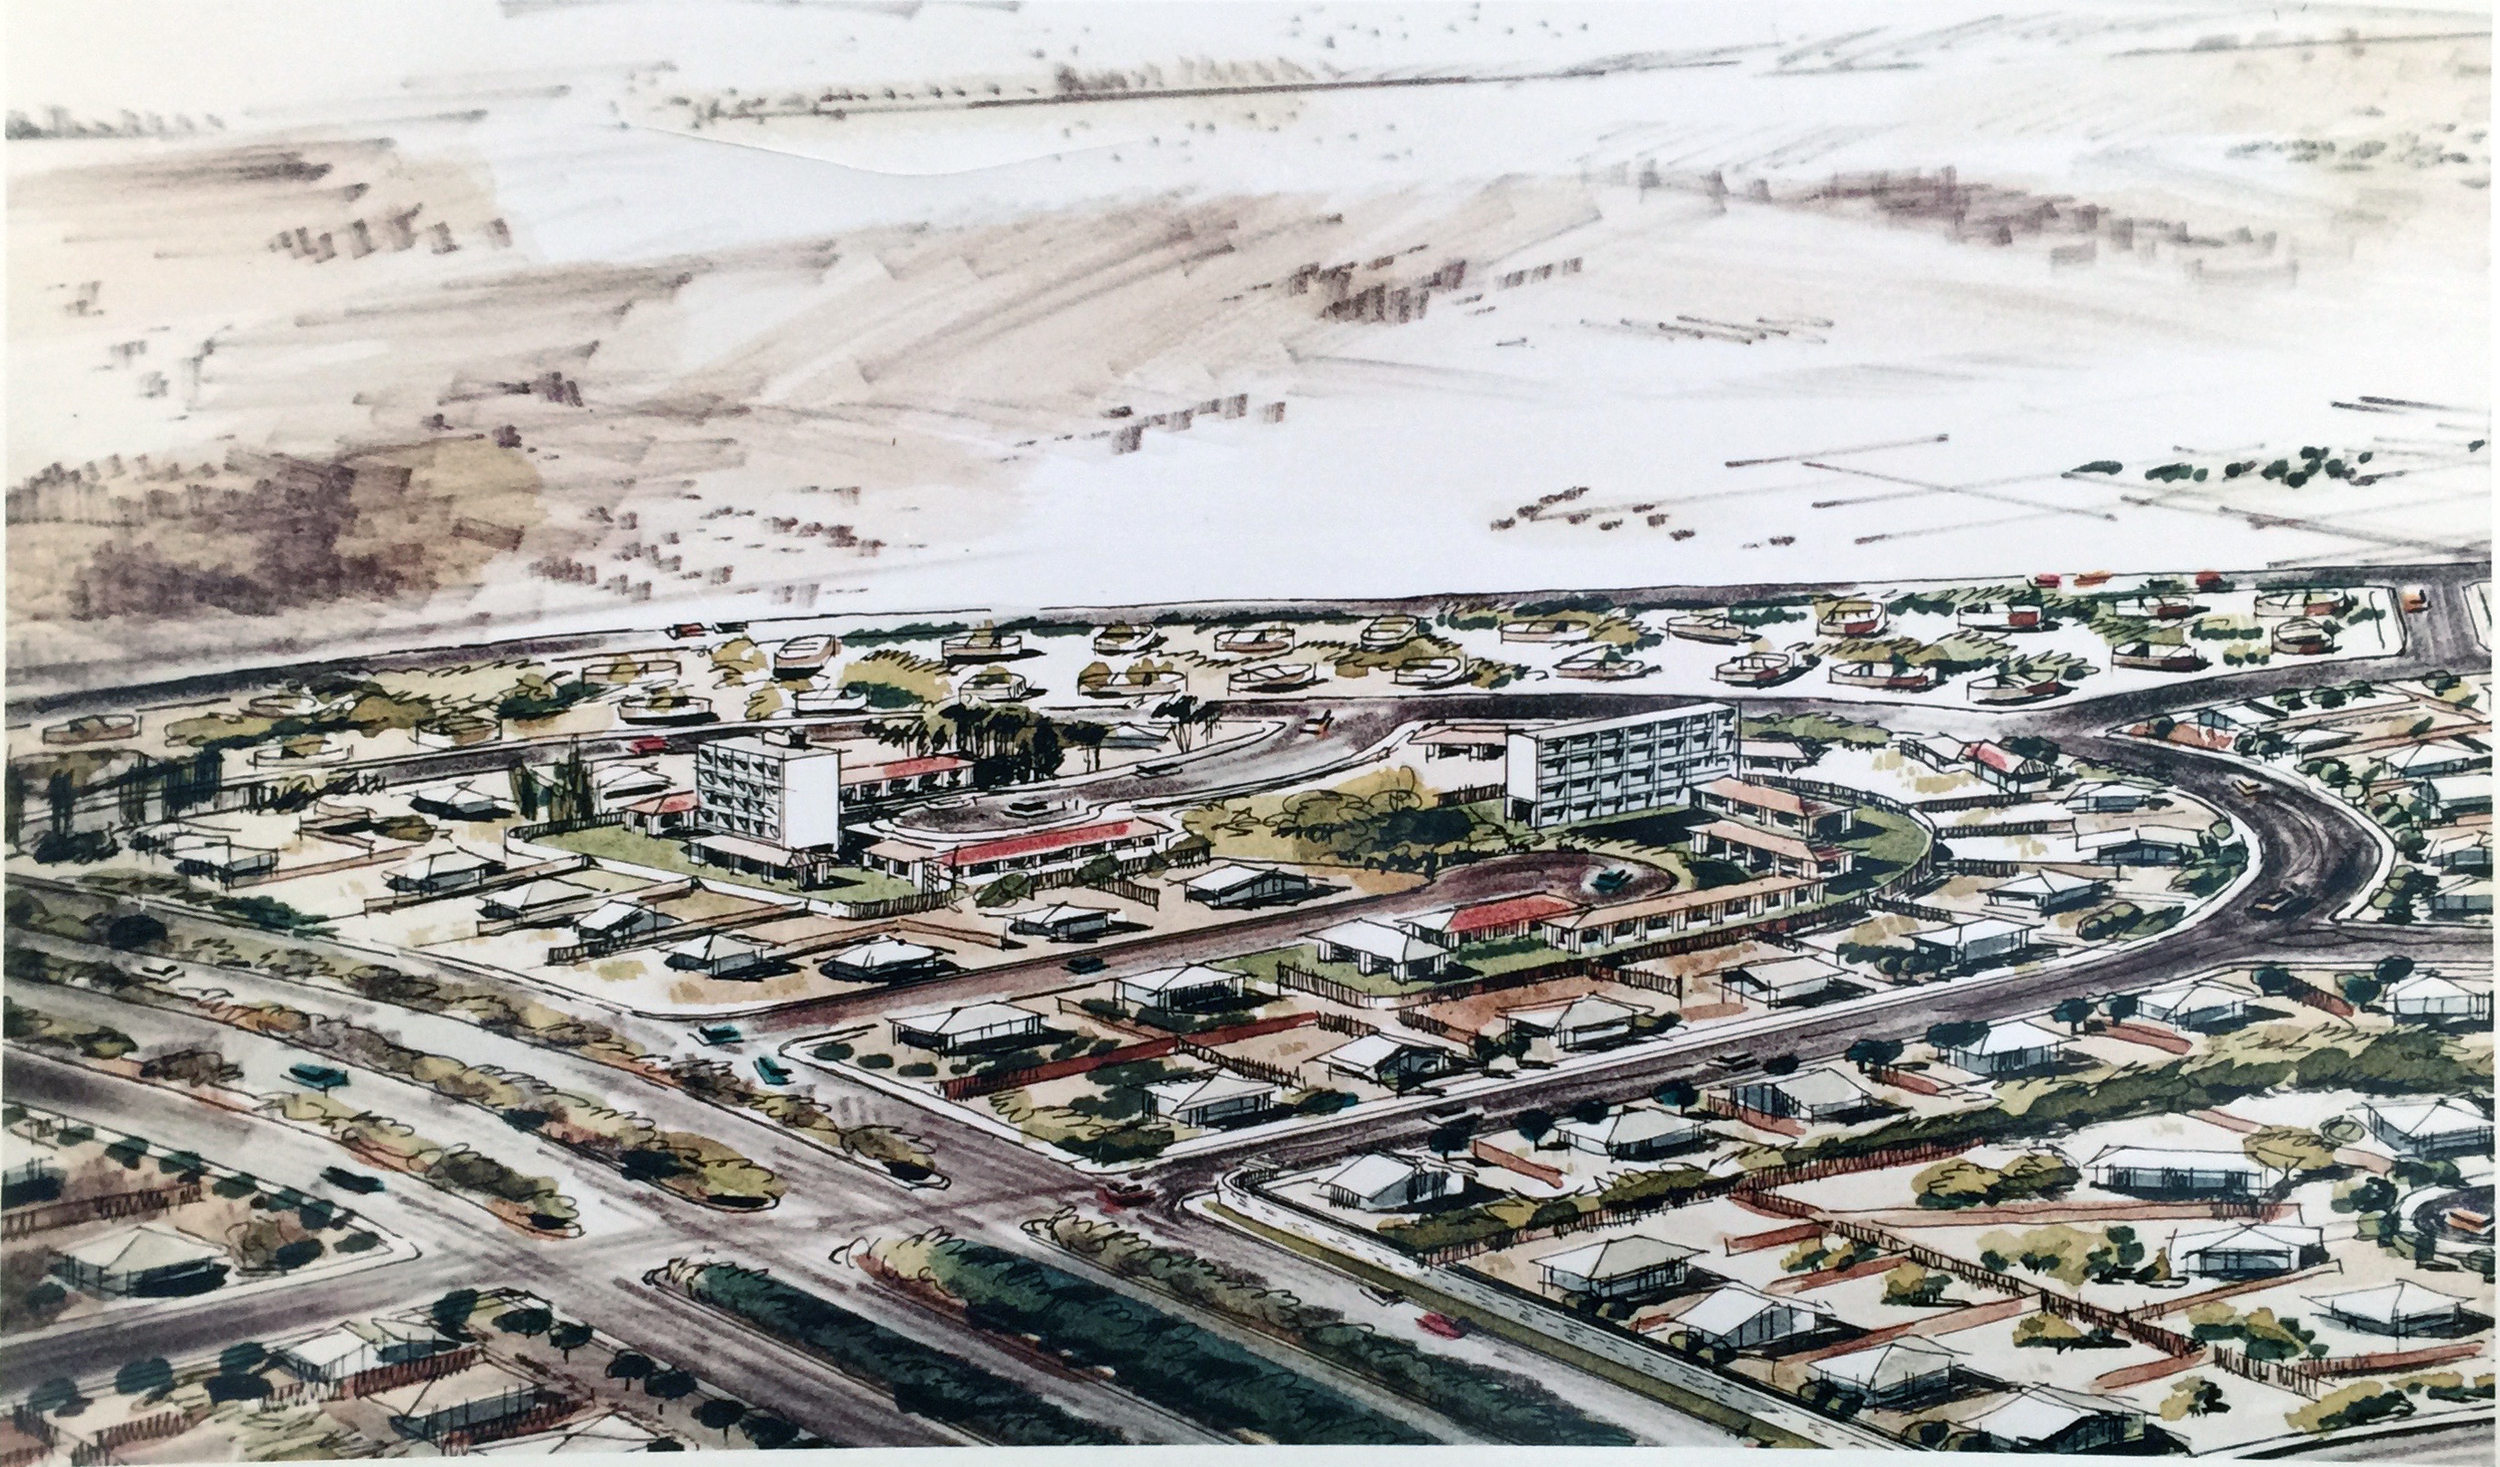 Smith and Williams, Architects and Engineers. Detail of a Subdivision, California City Master Plan. 196?. Architecture and Design Collection, University Art Museum, UCSB.